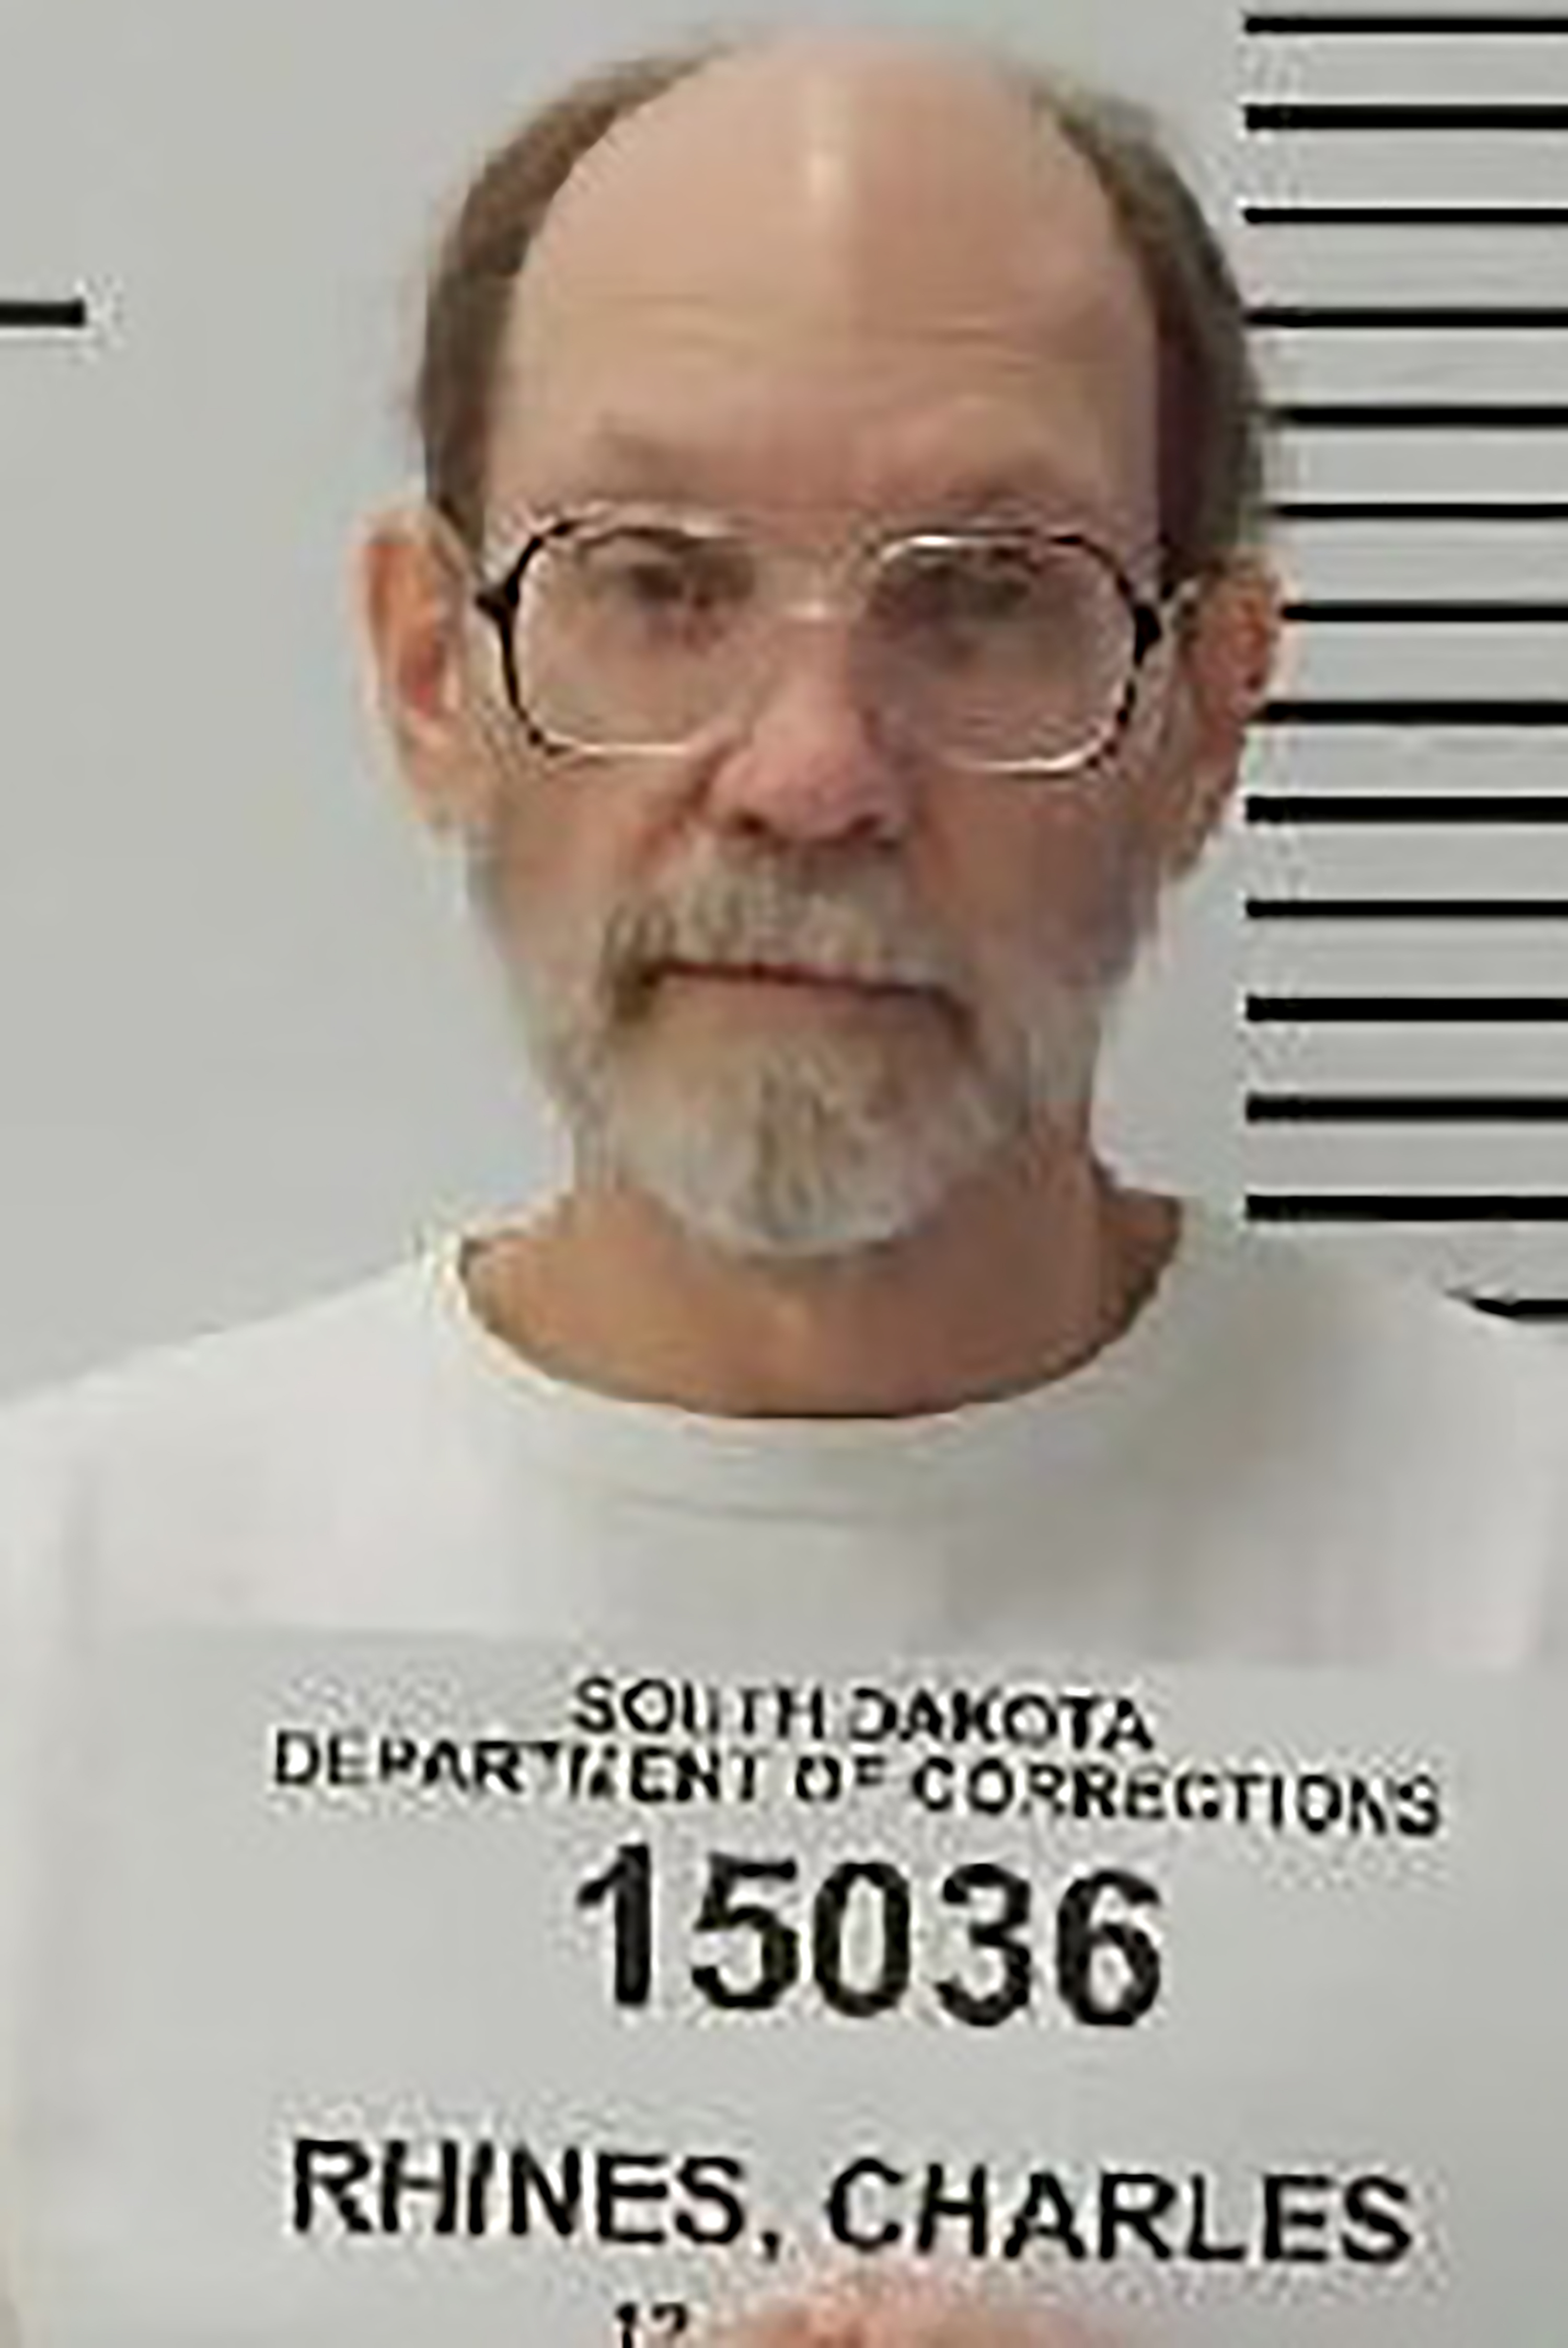 South Dakota asks court to let execution proceed